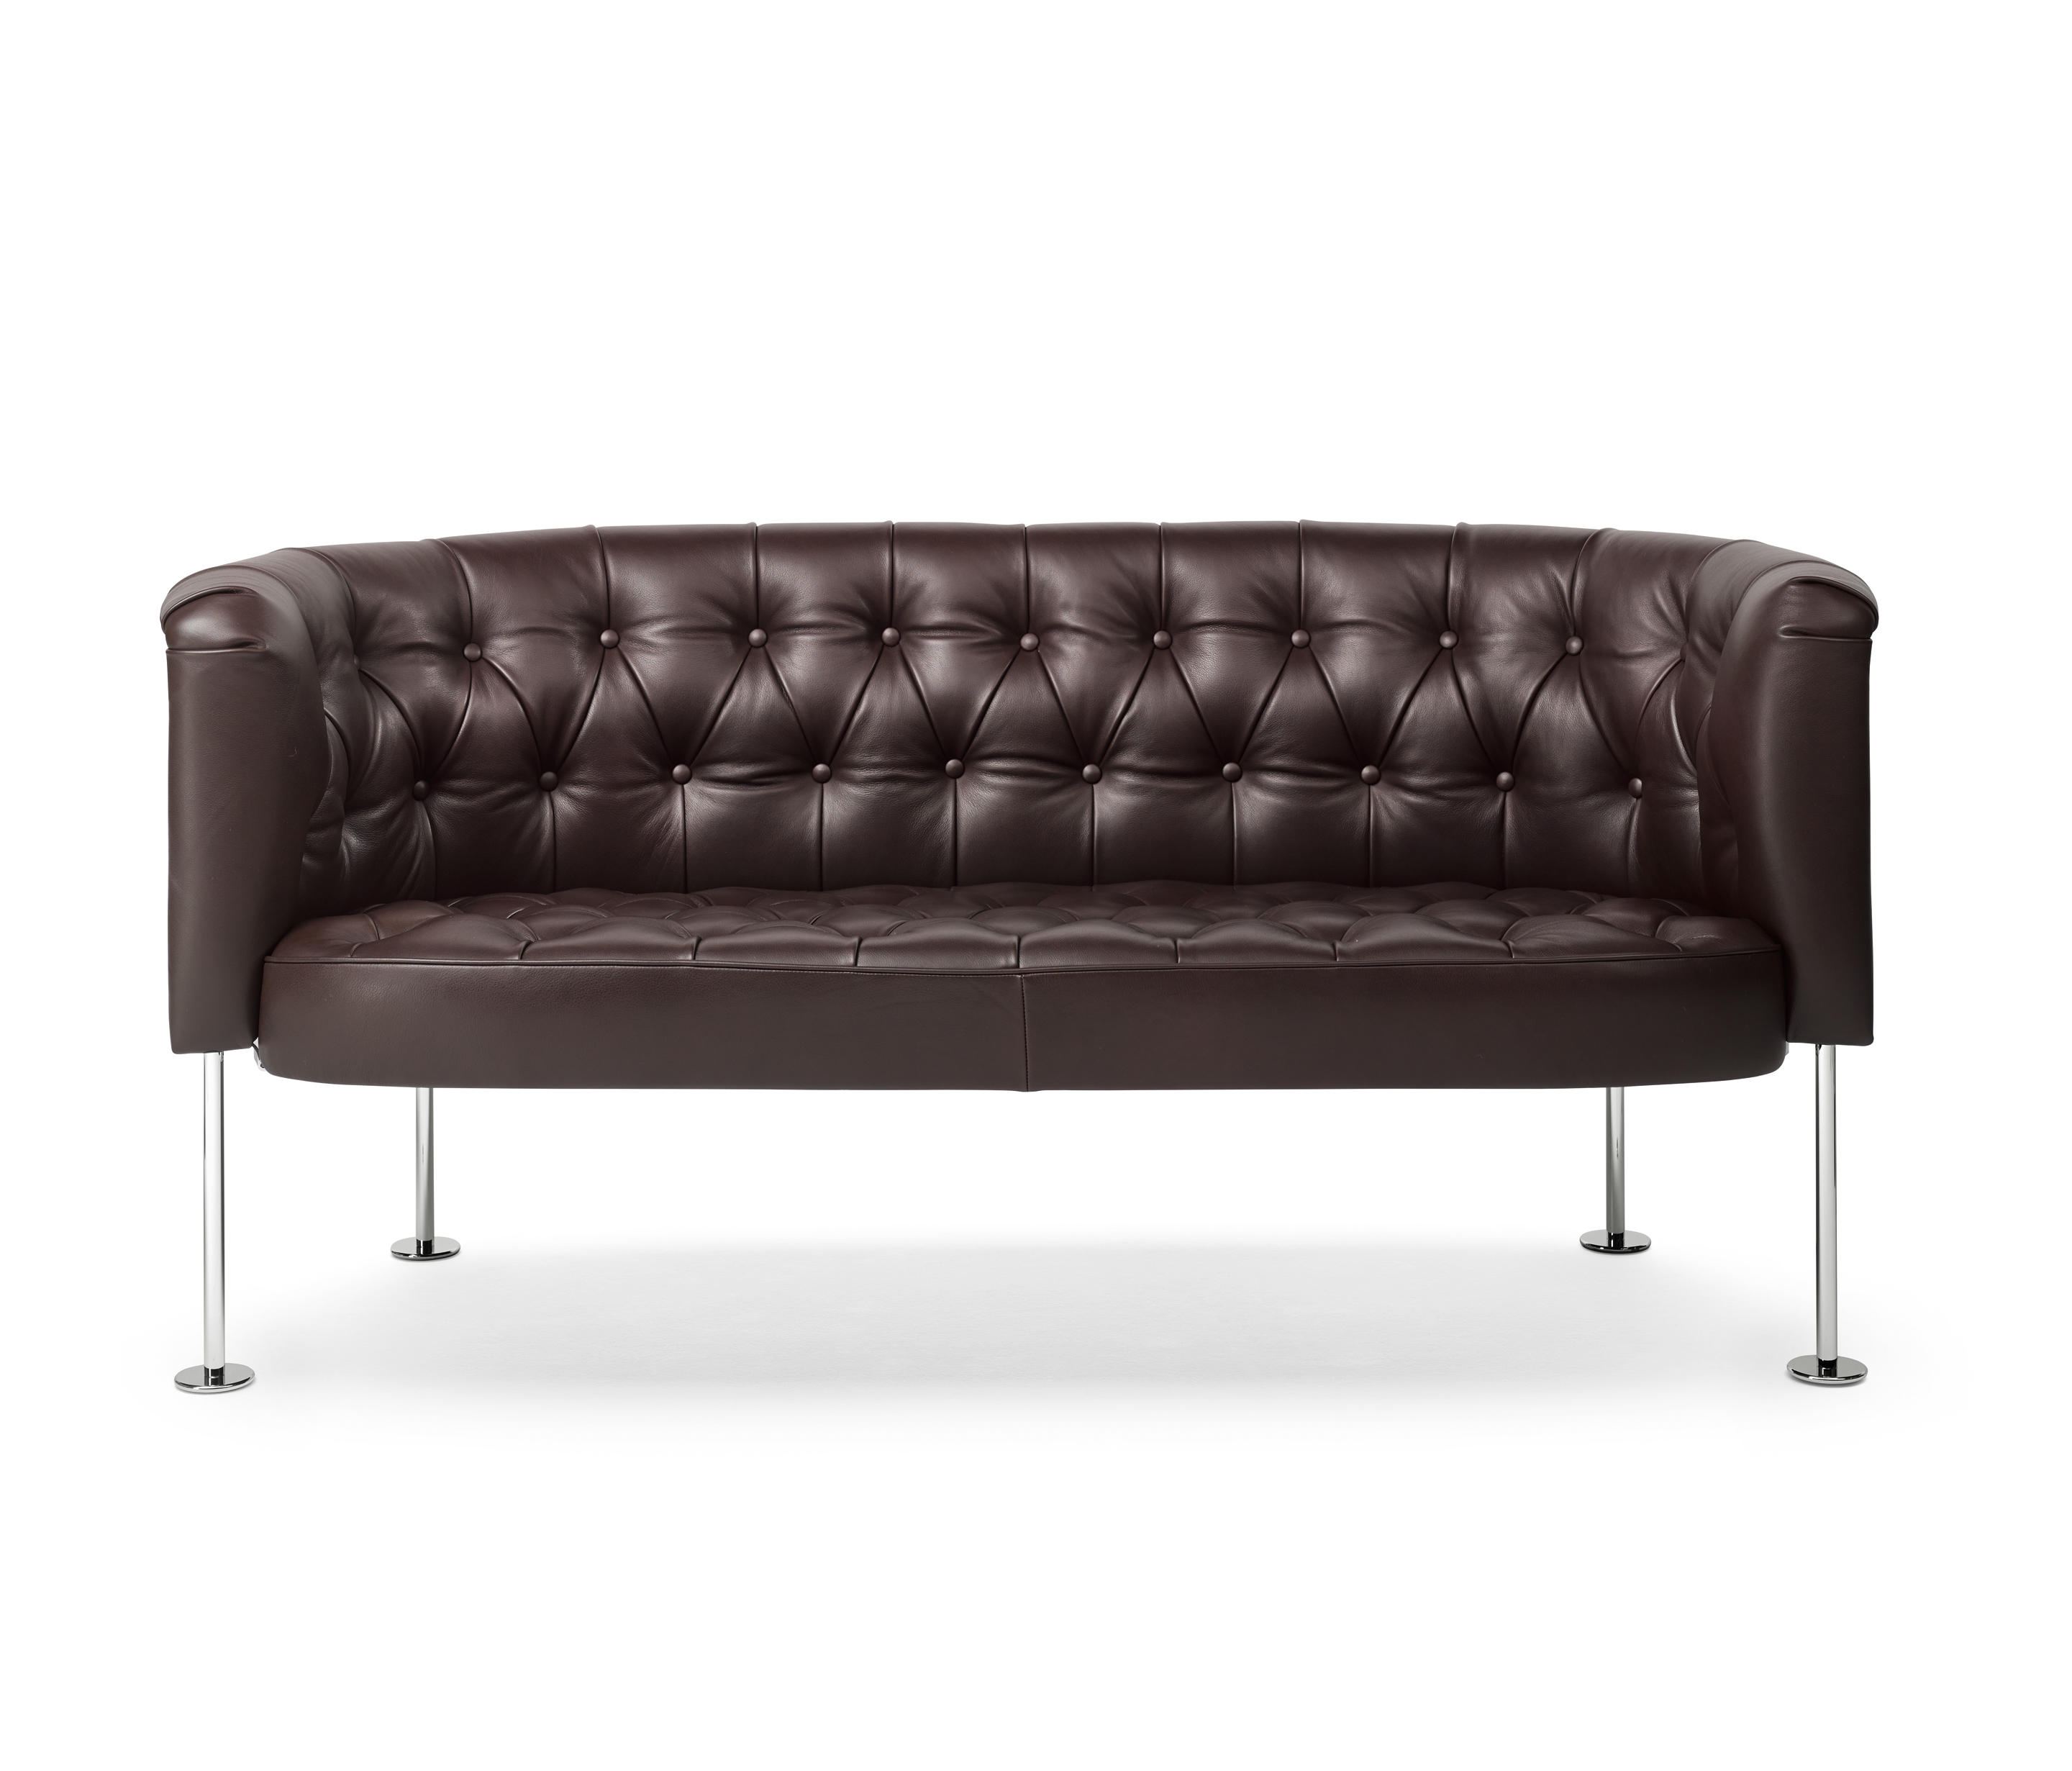 haussmann 310 sofa lounge sofas from walter knoll architonic. Black Bedroom Furniture Sets. Home Design Ideas